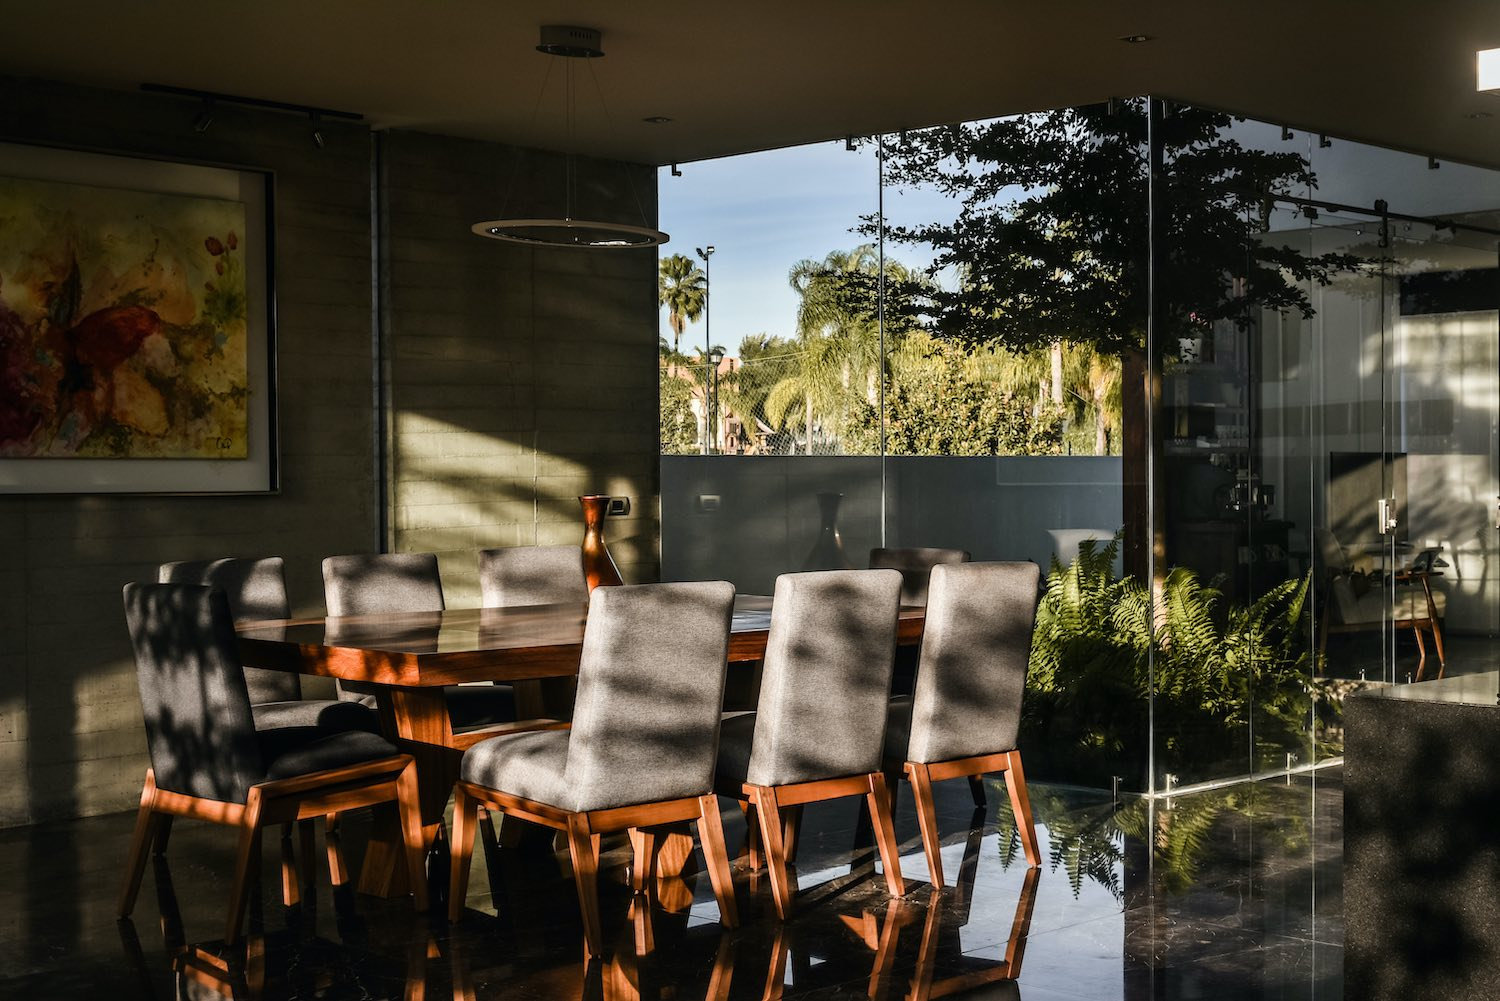 sunlight hitting the dining table and chairs